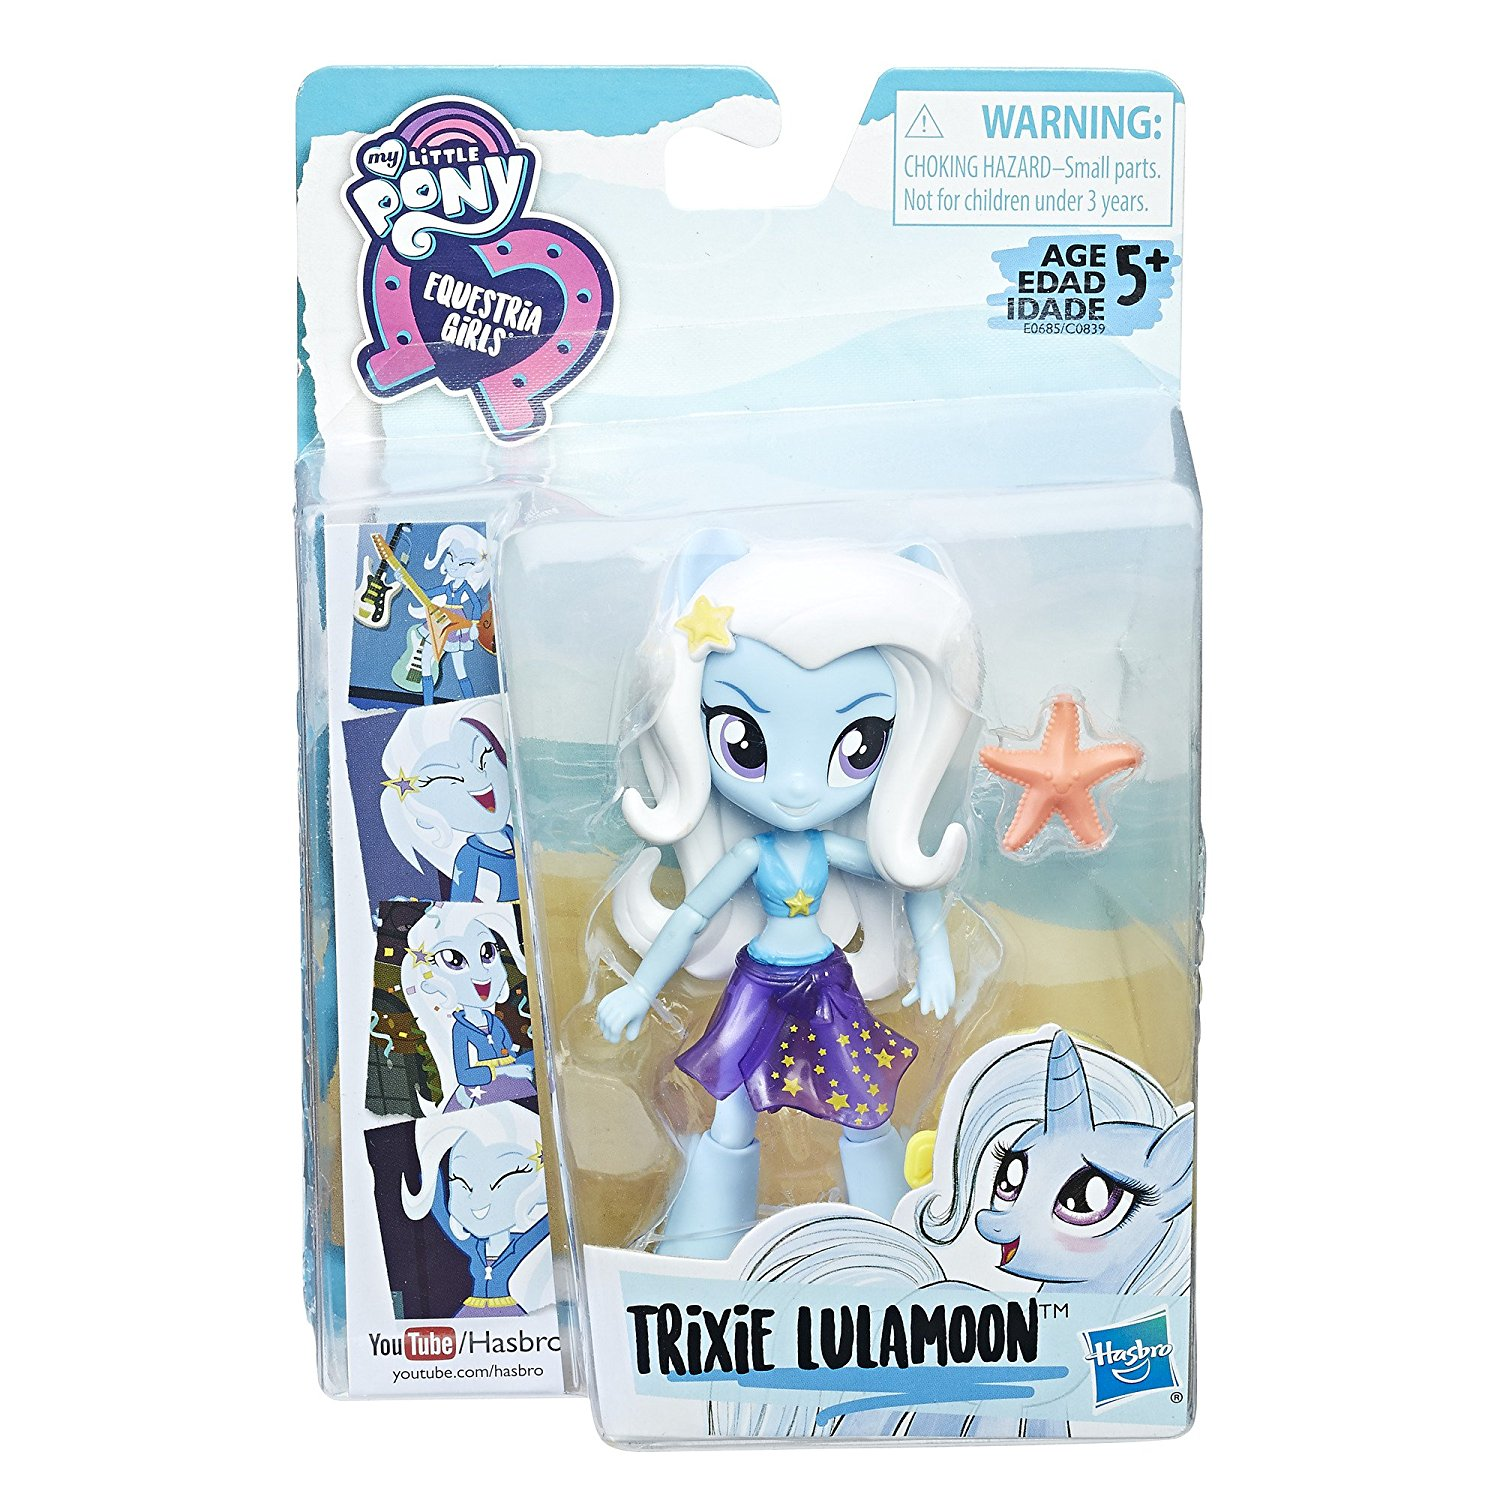 Images of Beach Equestria Girls Minis Appear on Amazon ...